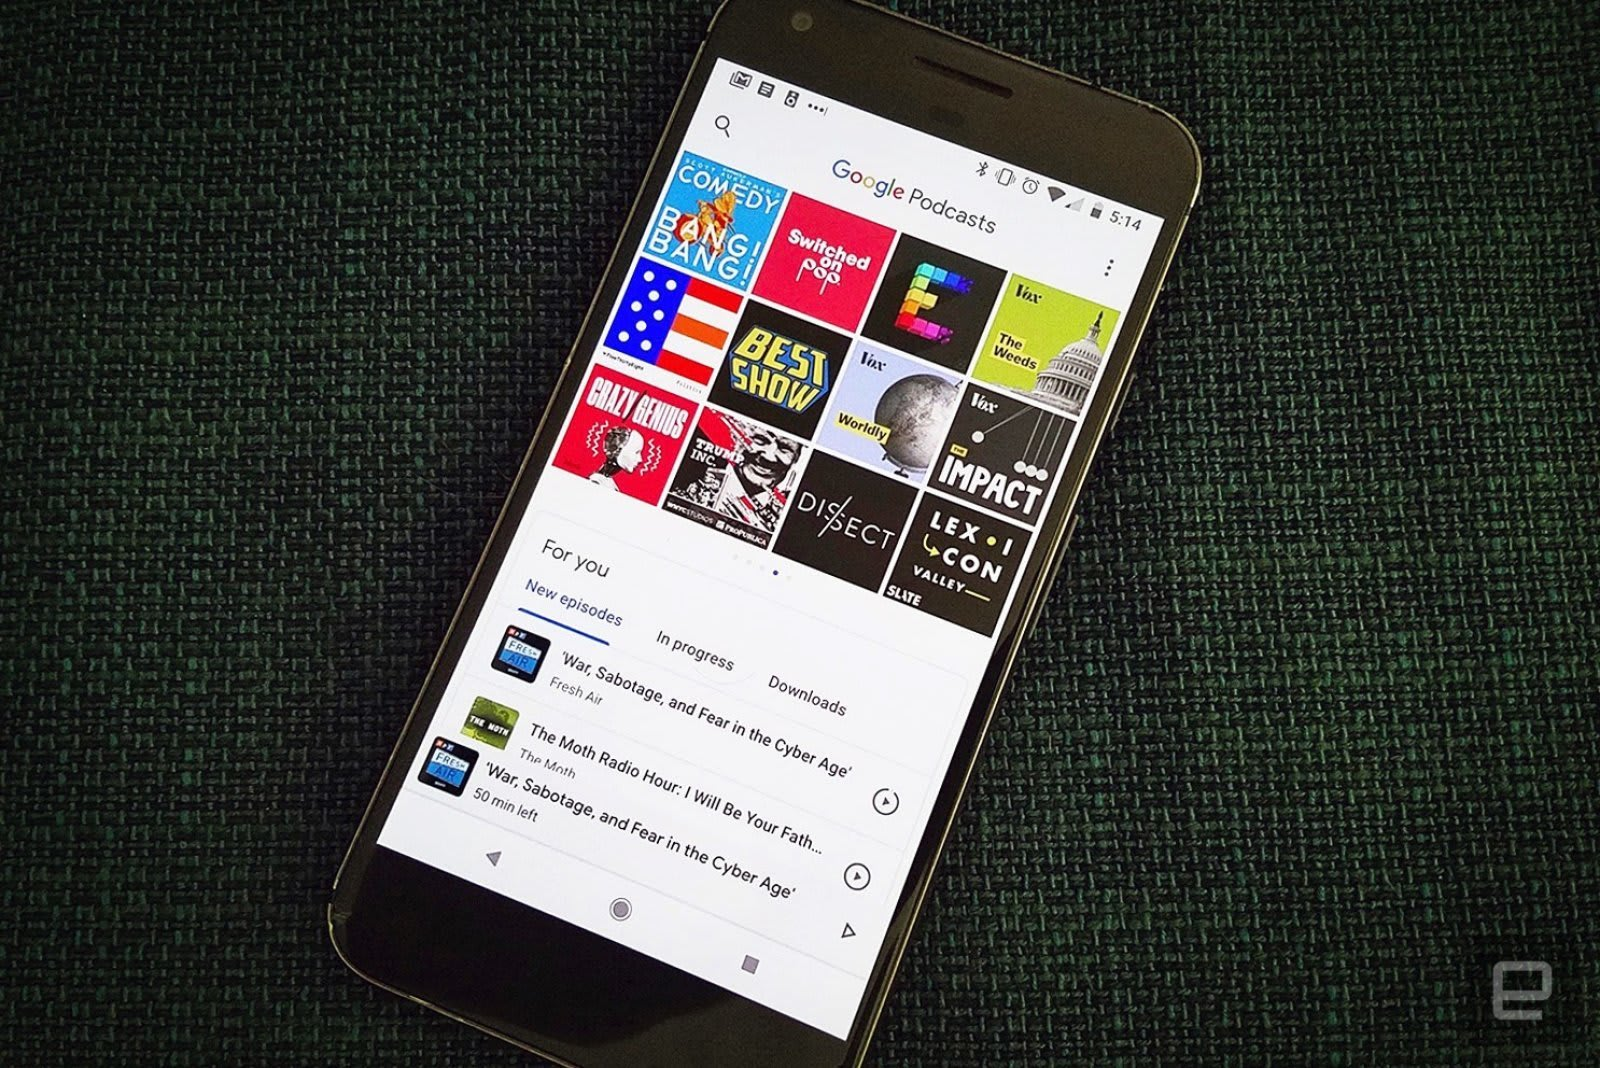 BBC removes its shows from Google's Podcasts app